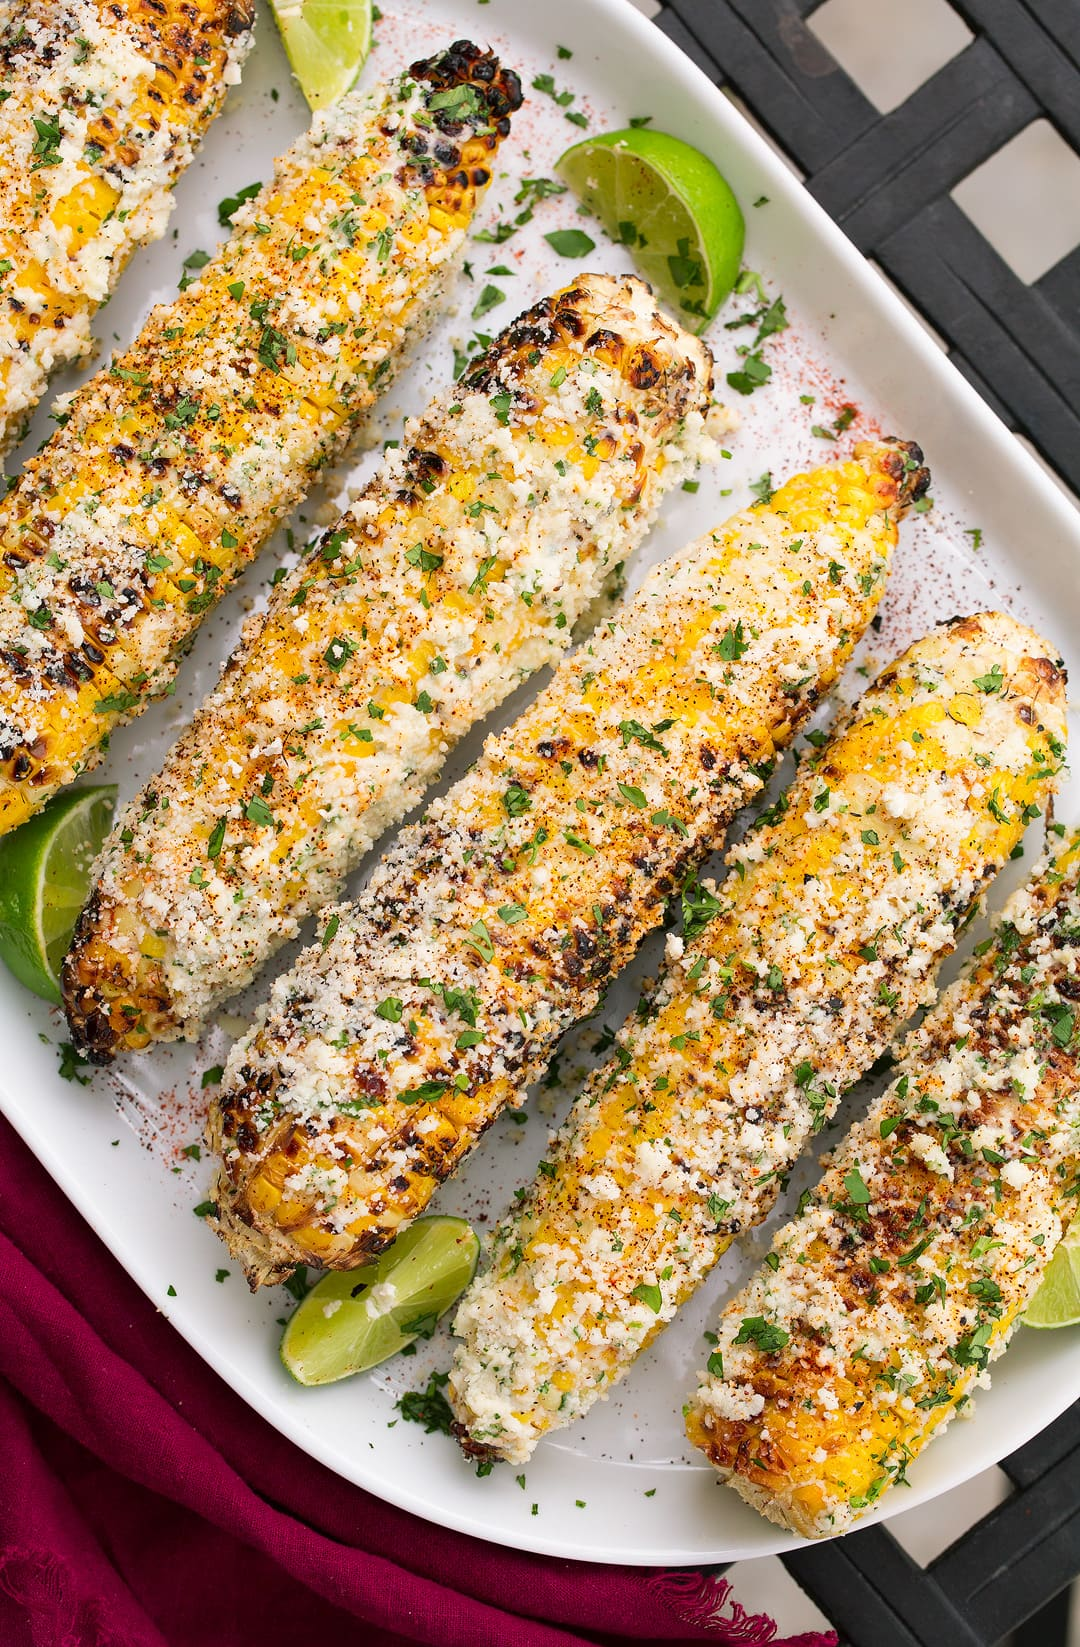 Mexican Street Corn on a large white platter. Corn cobs are topped with mayonnaise, cotija cheese, and chili powder.